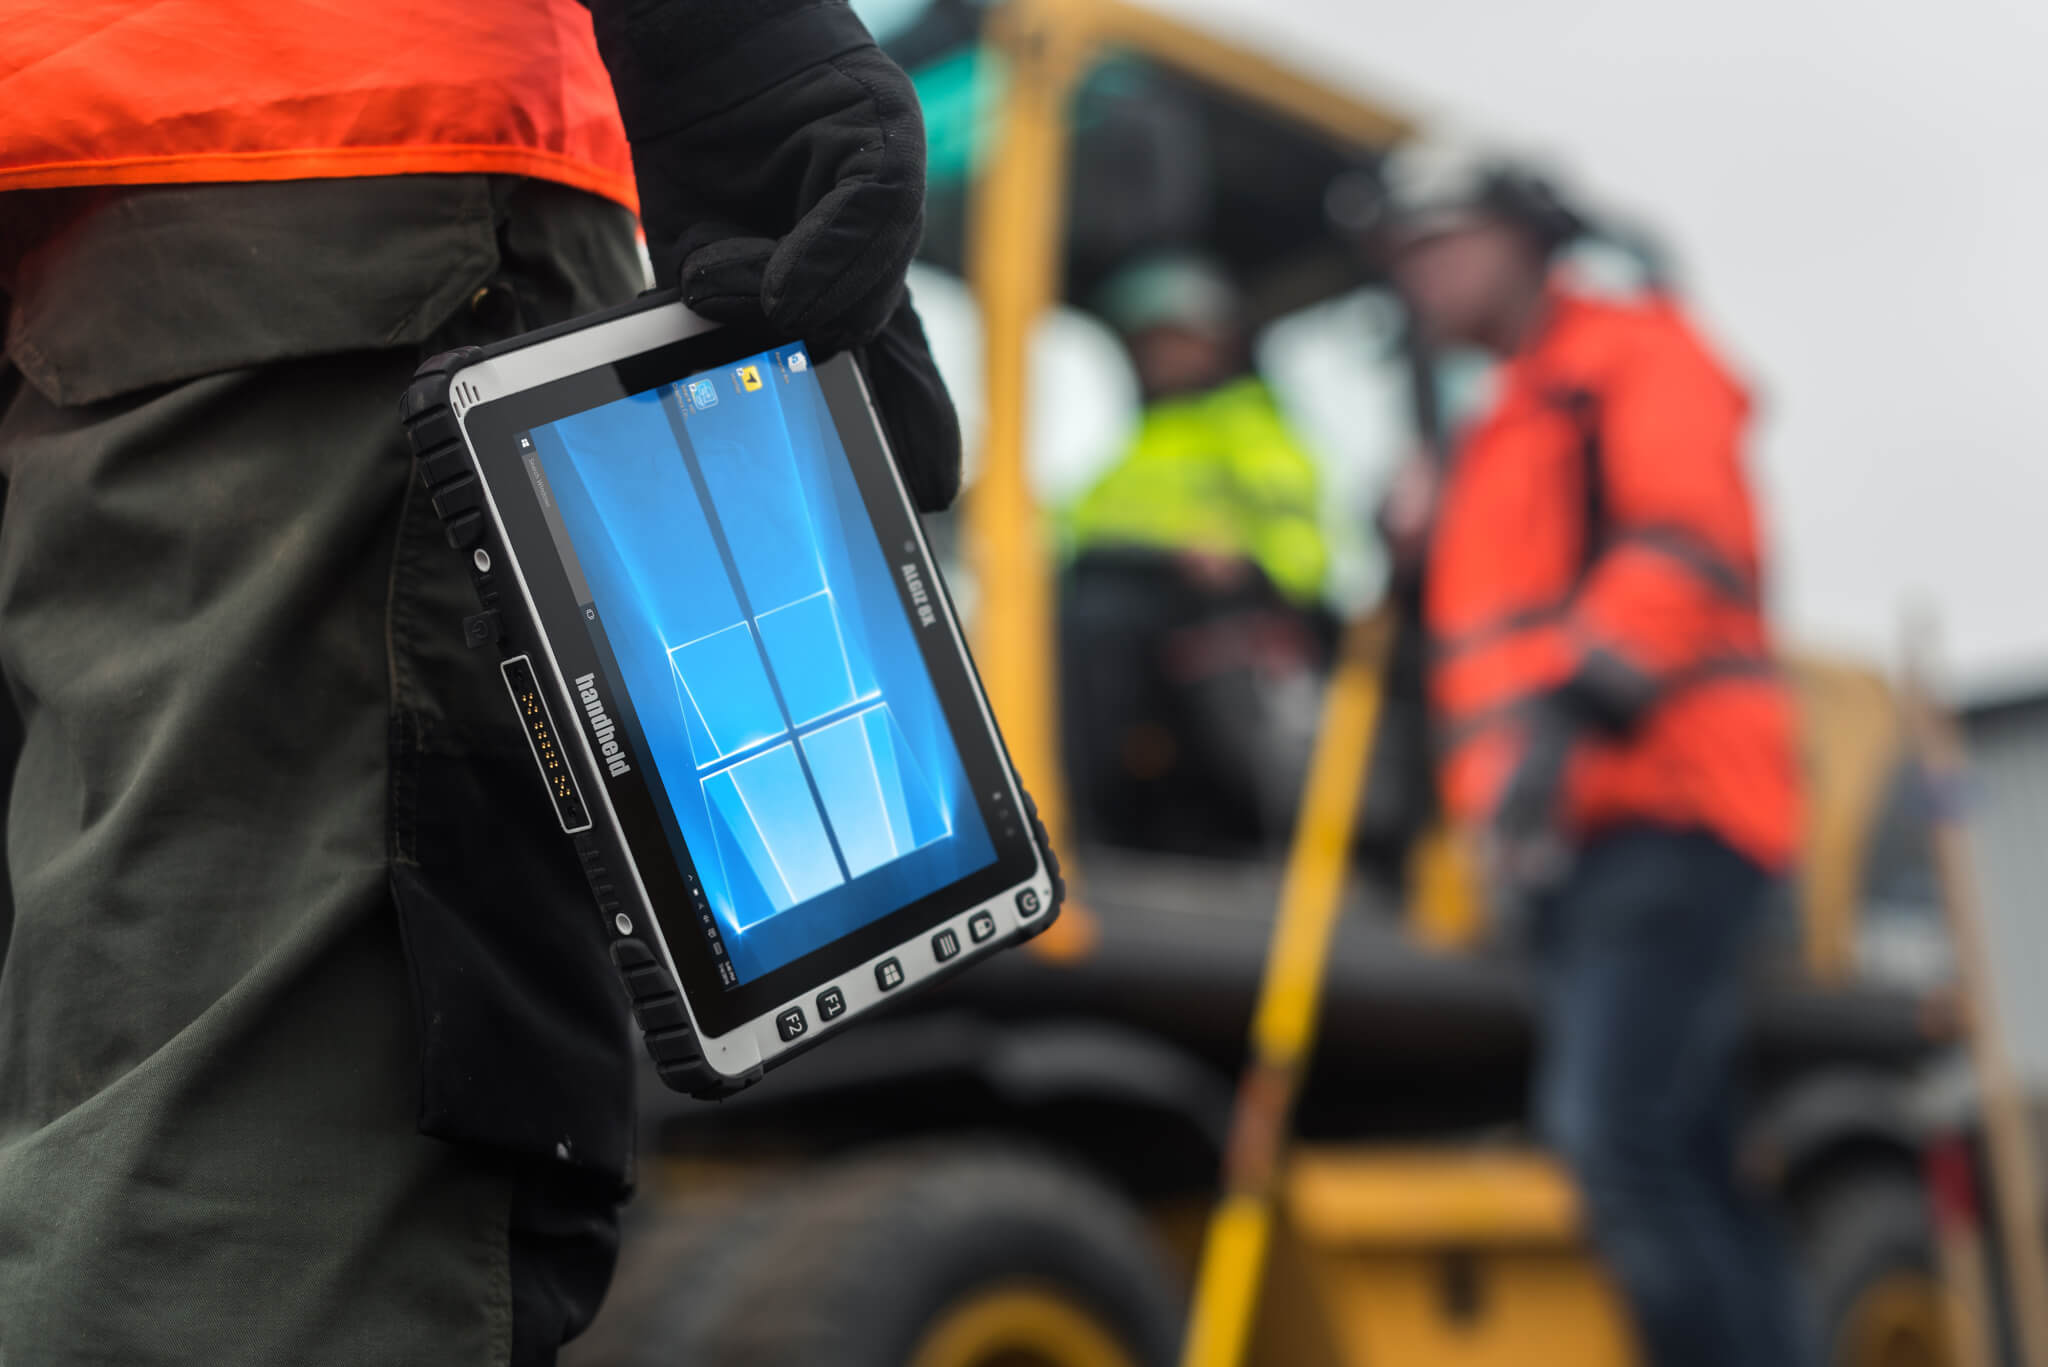 The Algiz 8X Rugged Tablet for Field Work and Maintenance